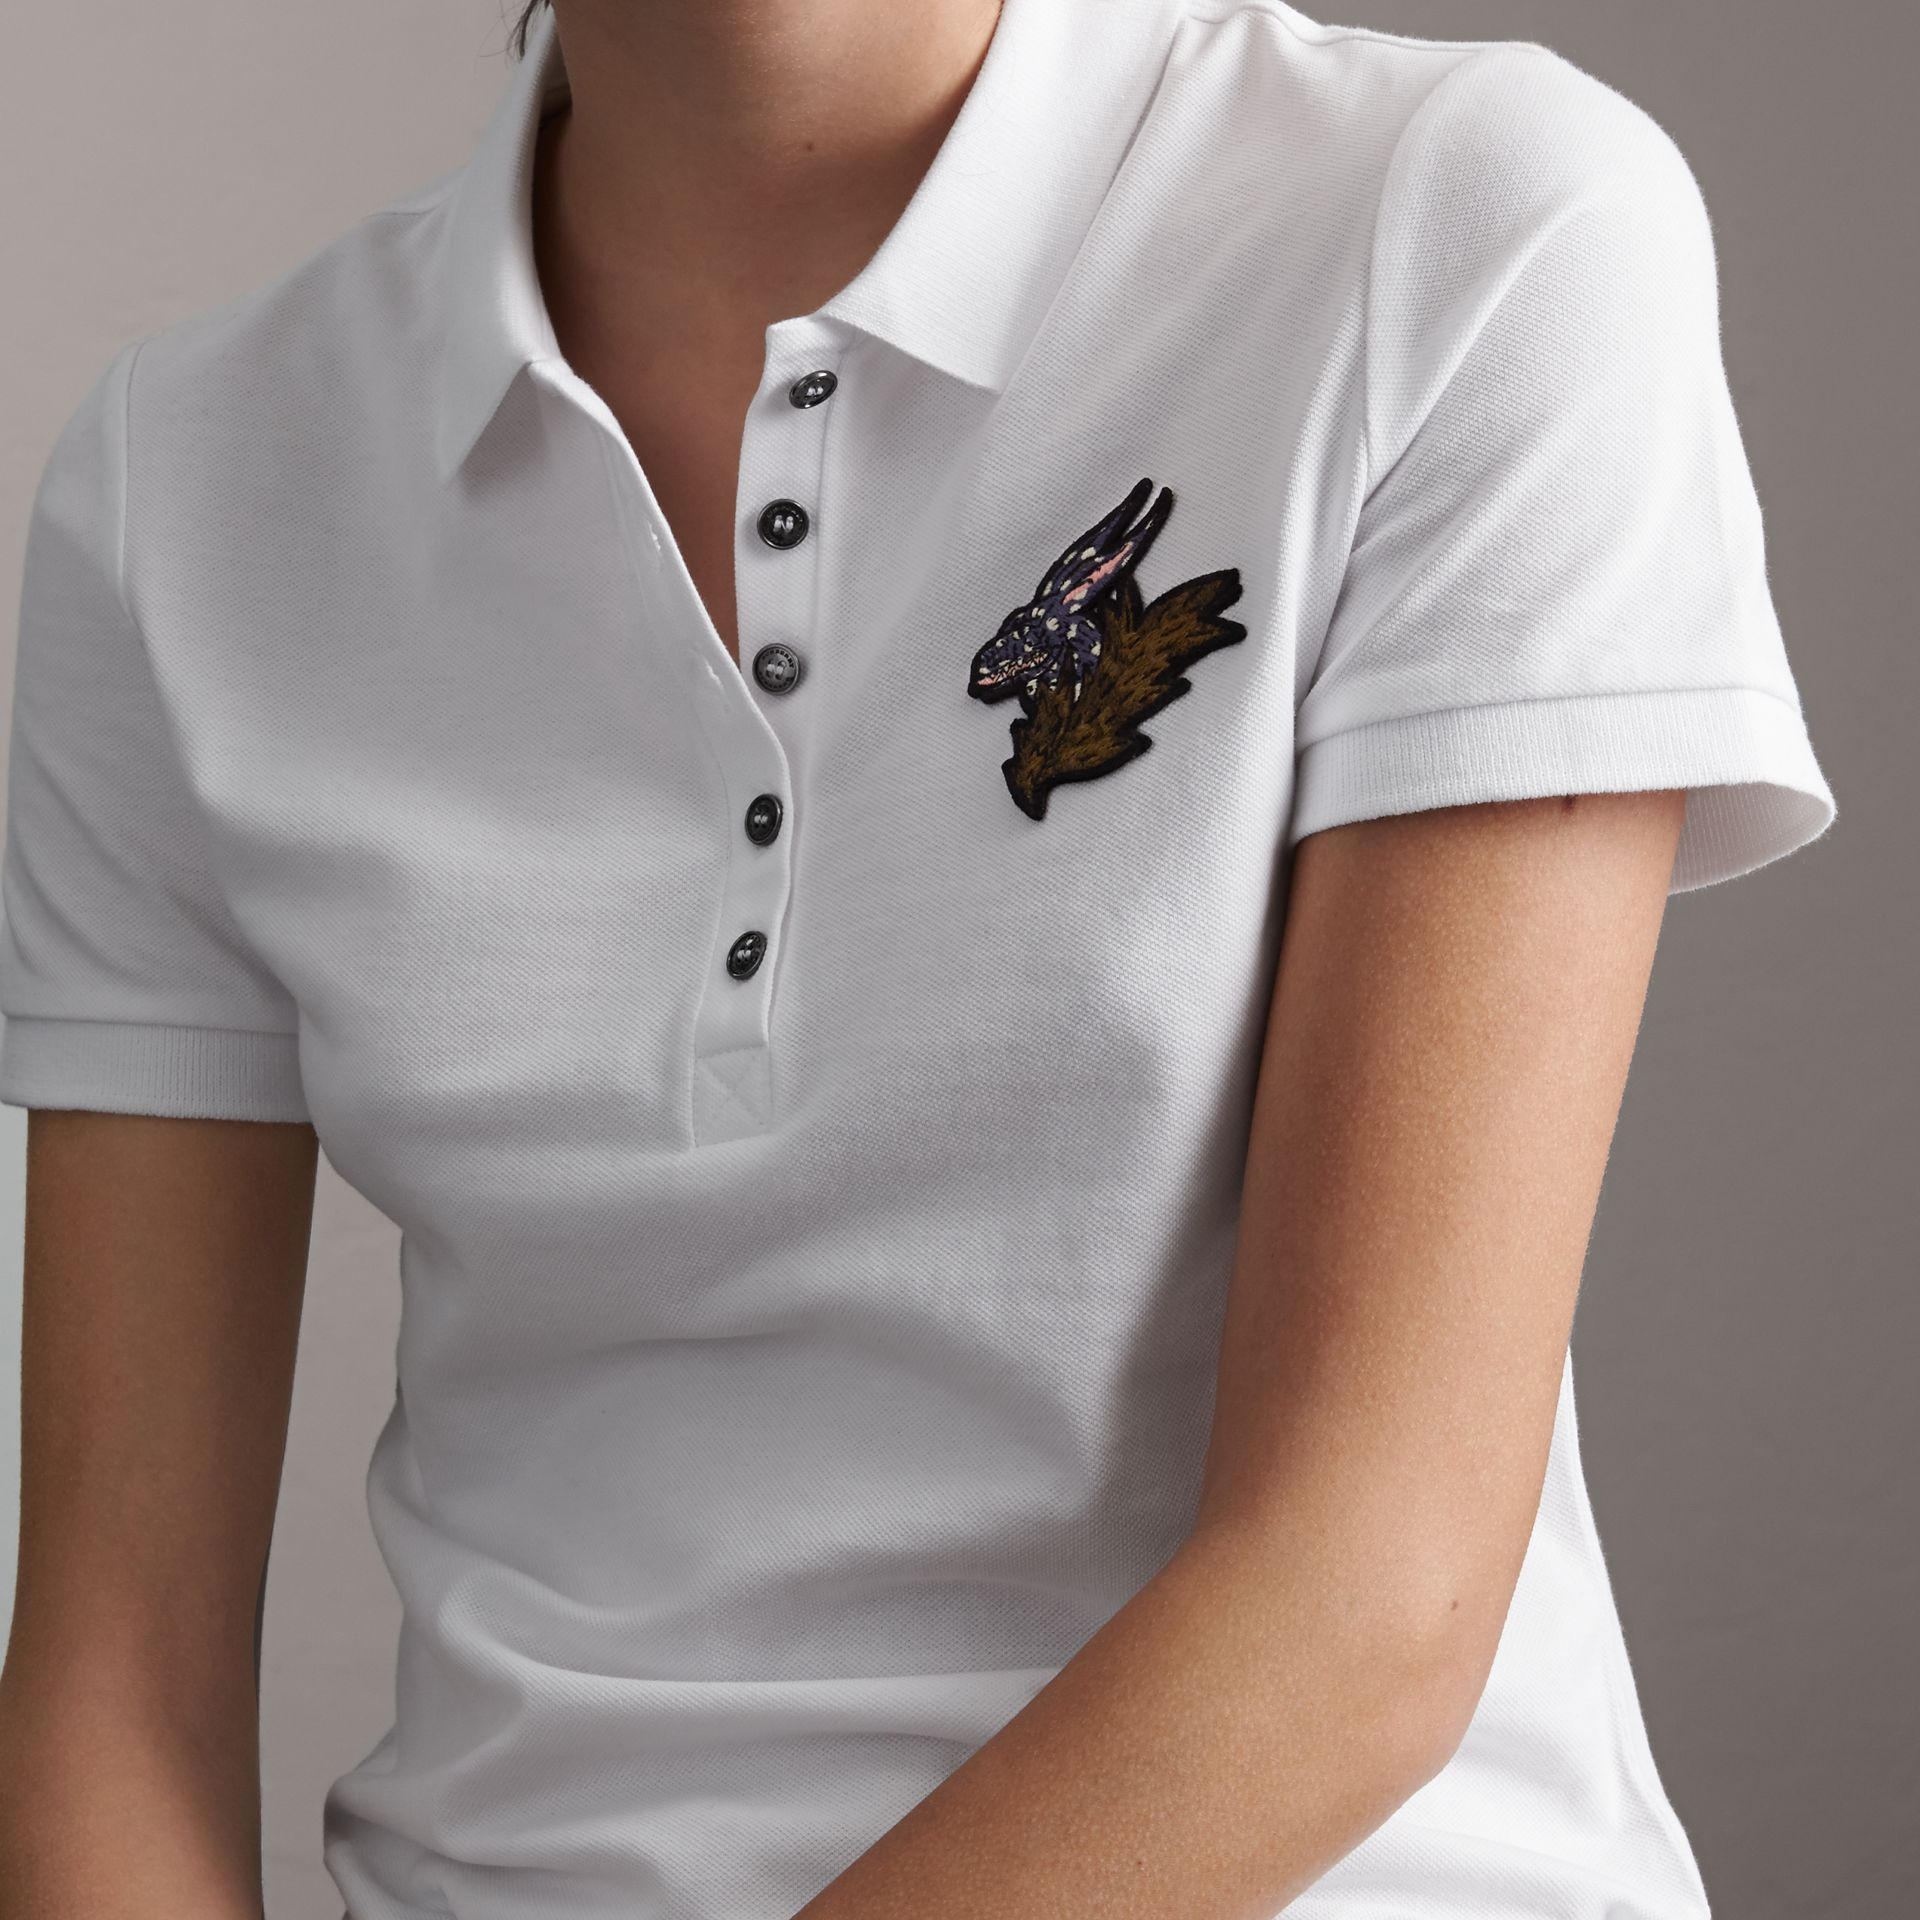 Beasts Motif Stretch Cotton Piqué Polo Shirt in White - Women | Burberry - gallery image 5